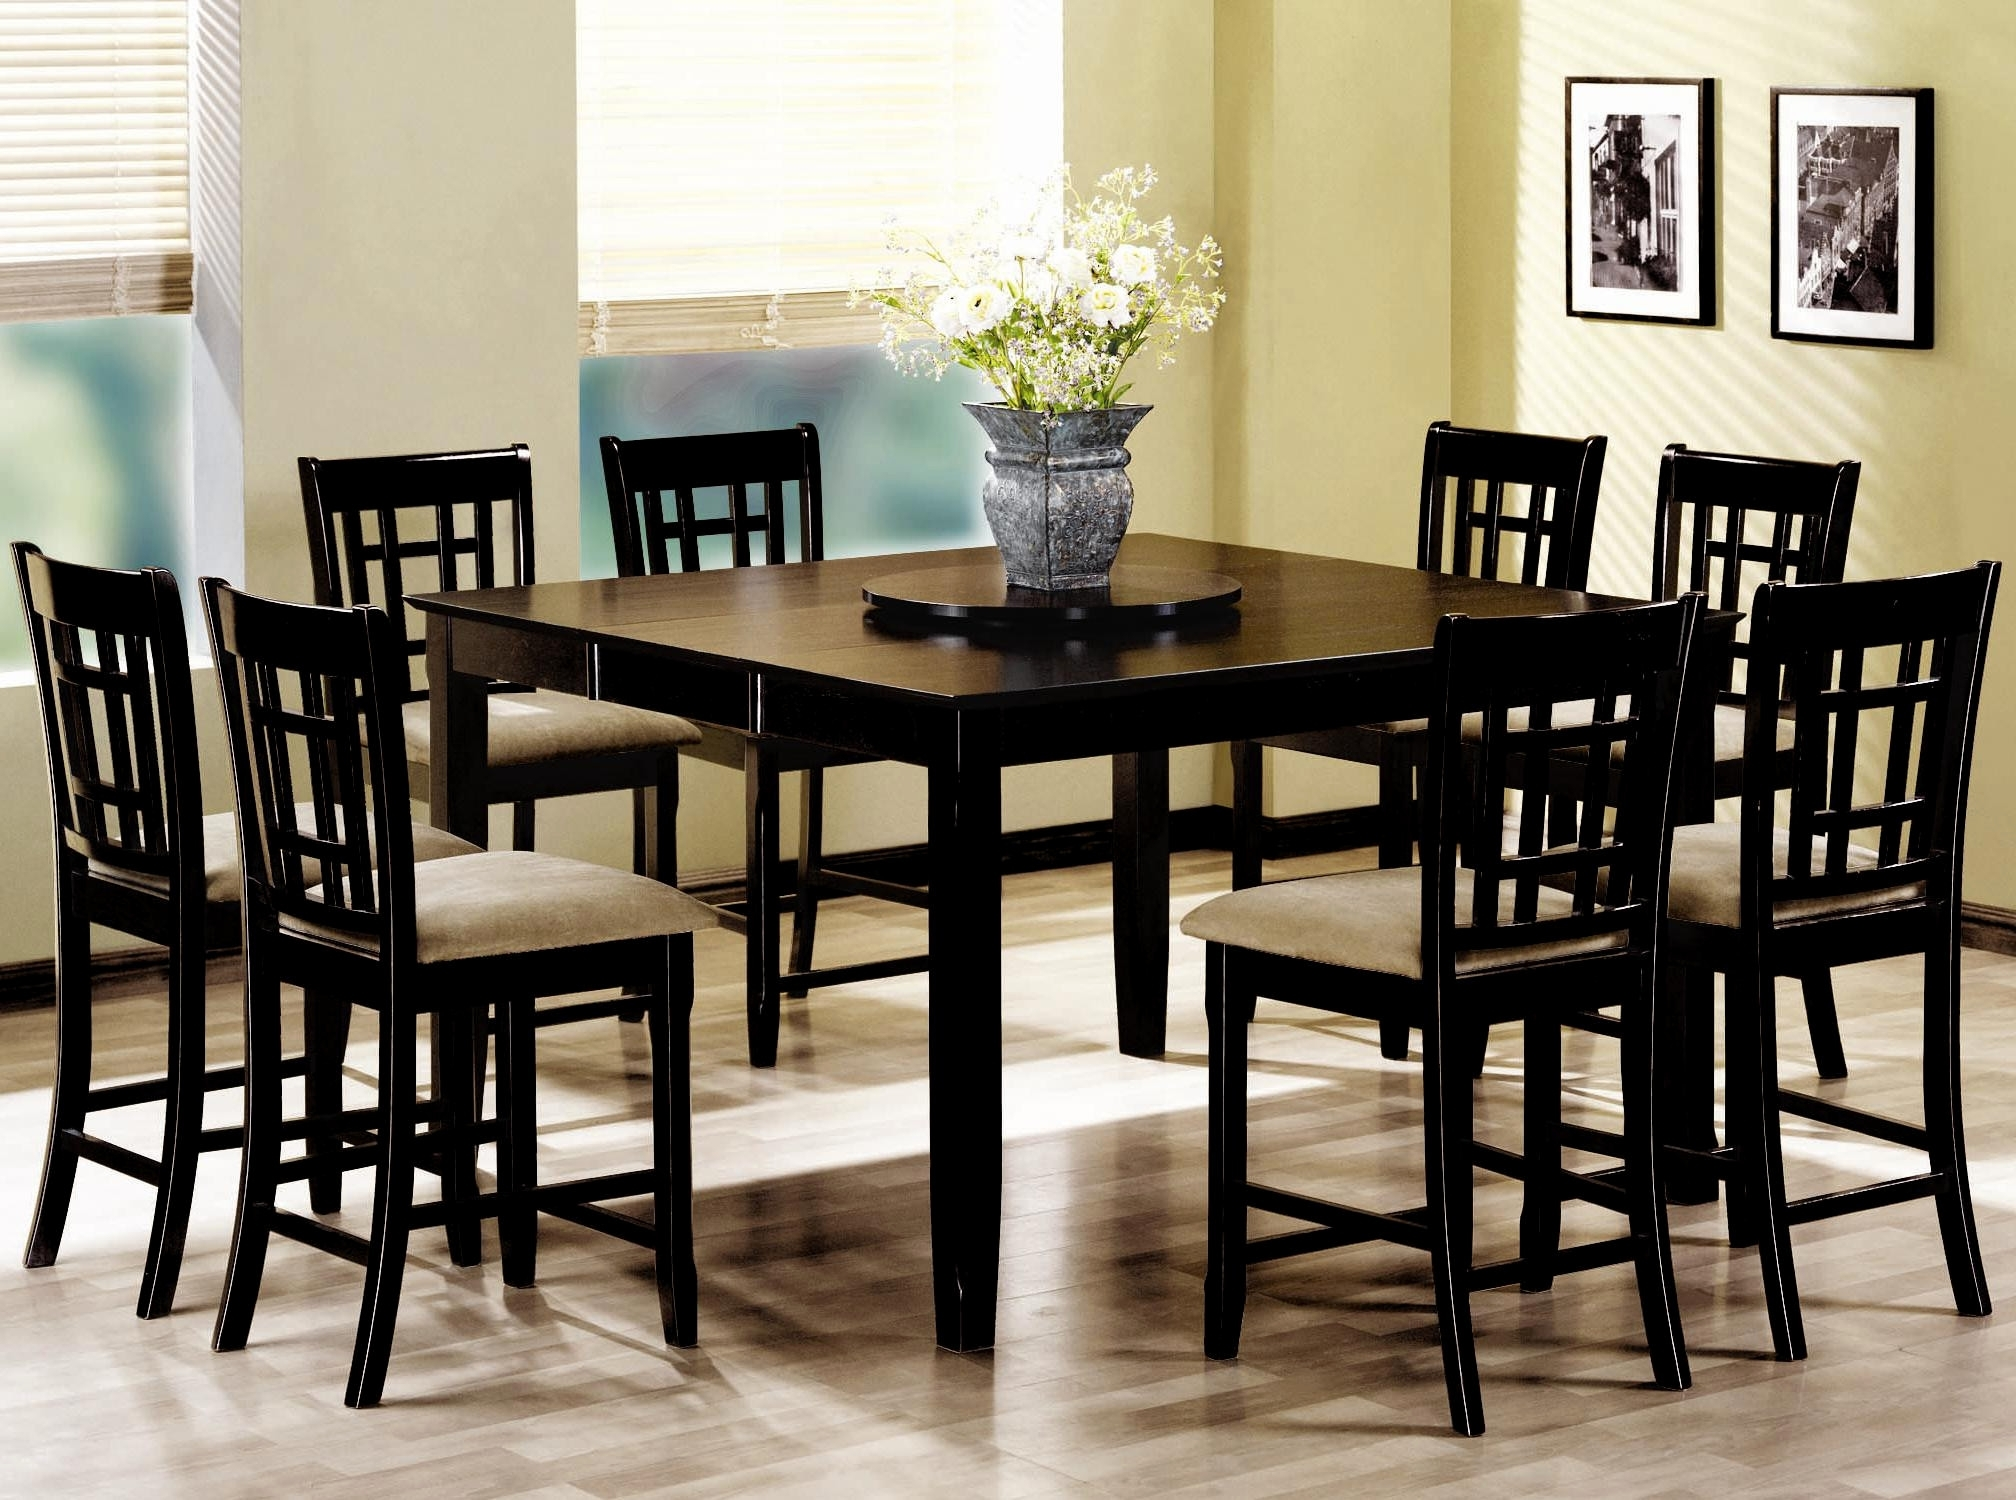 Dining Tables Set For 8 In Fashionable Luxury Round Dining Room Tables Sets For 8 – Round Dining Set For  (View 8 of 25)